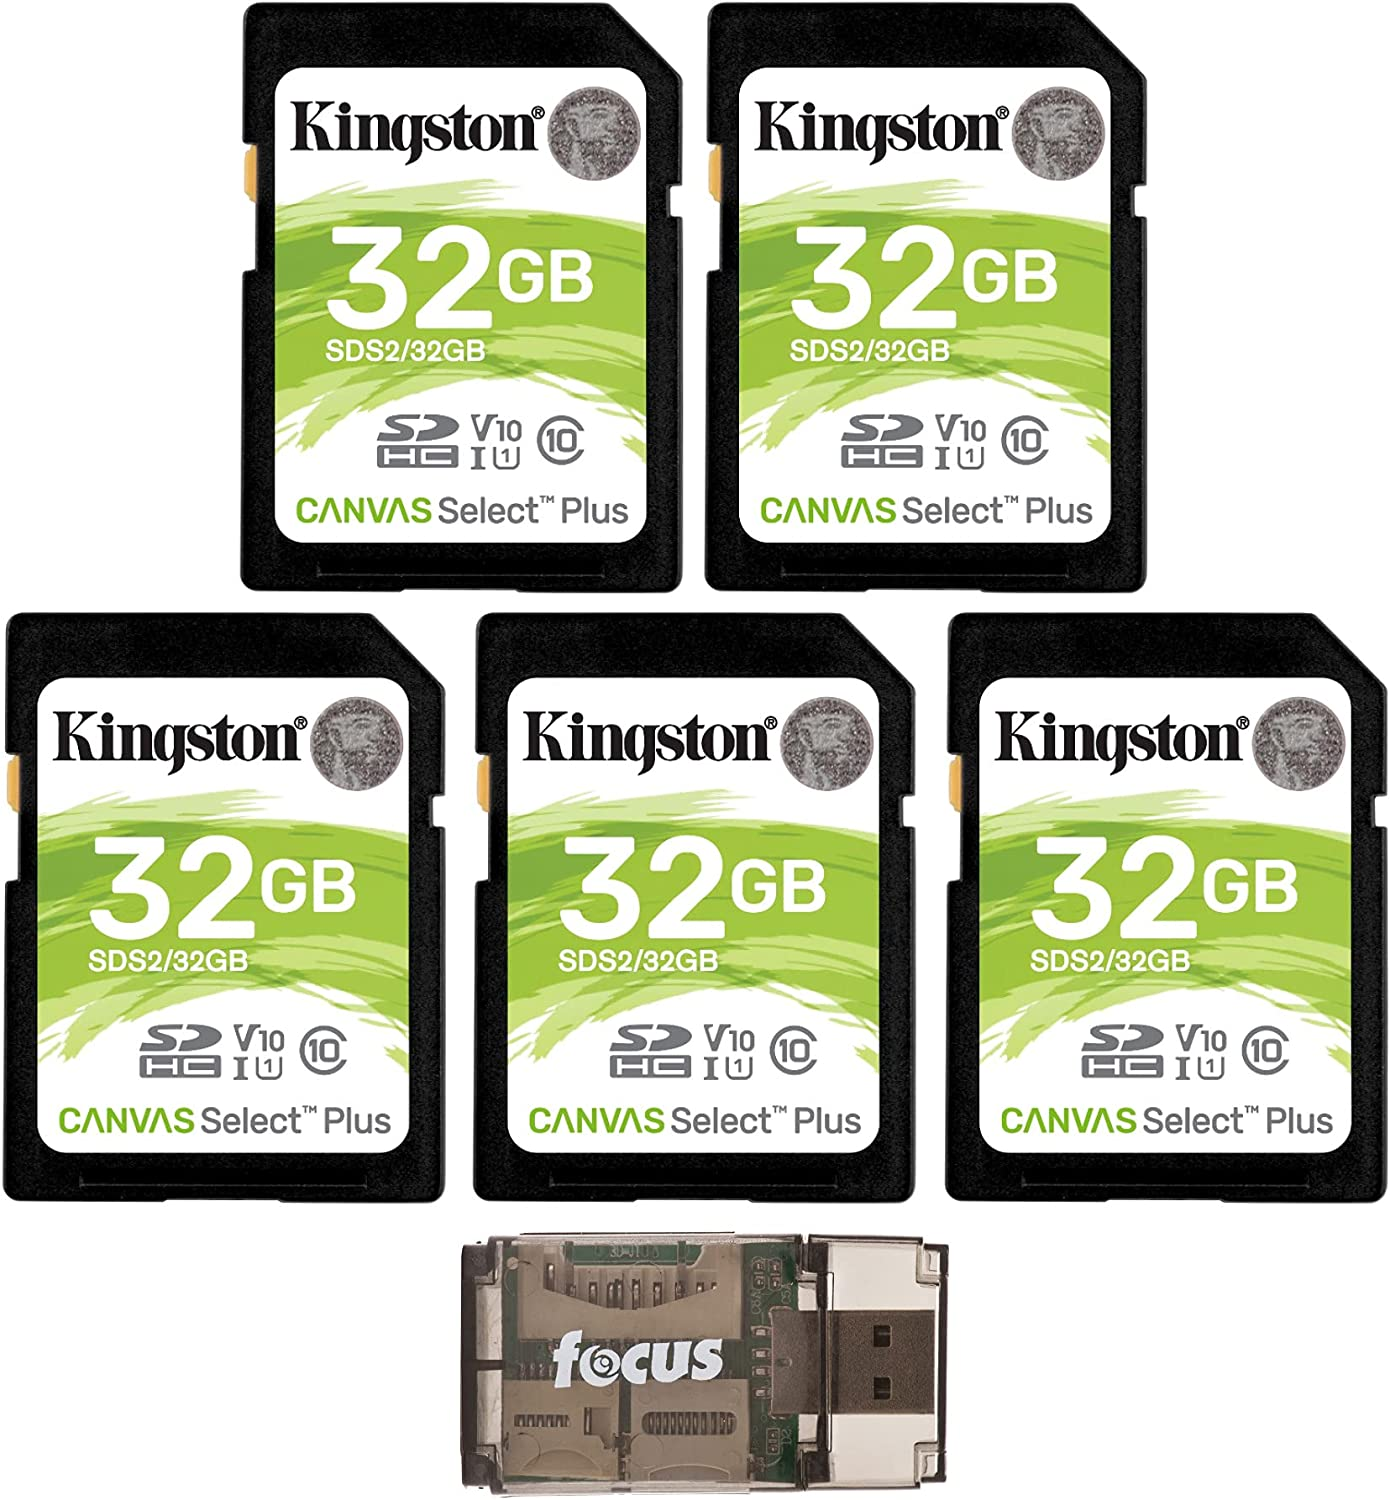 Kingston 32GB SDHC Canvas Select Class 10 UHS-1 (SDS/32GB) Memory Card (5-Pack) with Focus High Speed Card Reader Bundle (6 Items)